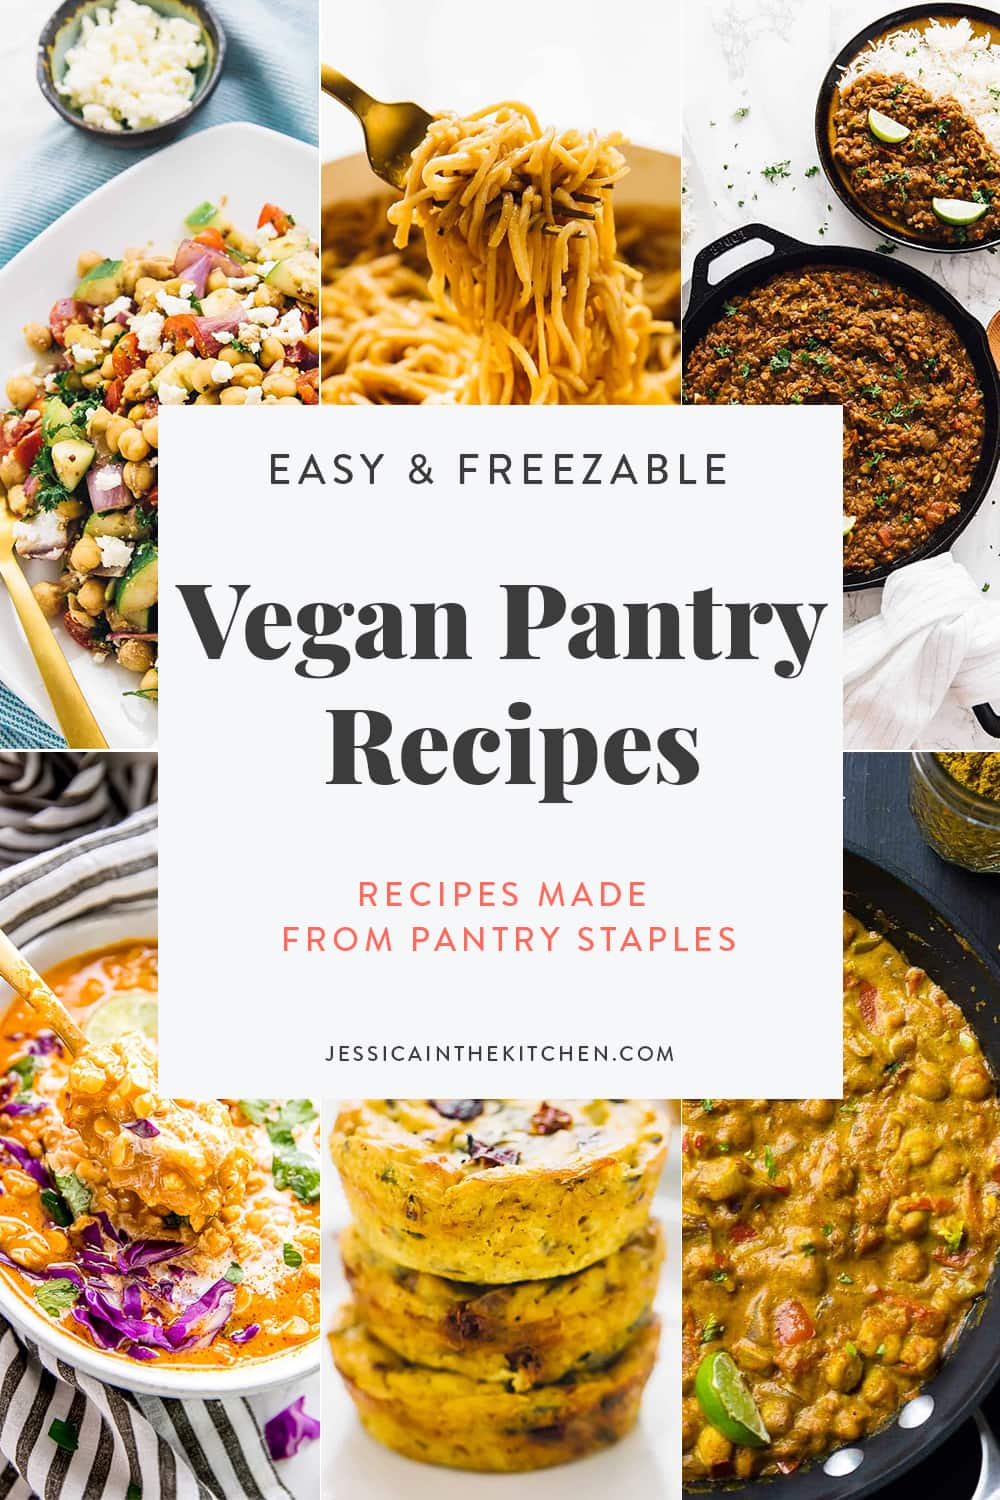 Here's a short list of some of my favourite easy Vegan Pantry Recipes - Recipes made from Pantry Staples. Including lots of great and practical tips for storing your meals, prepping them, and ensuring you extend the shelf life of your ingredients!